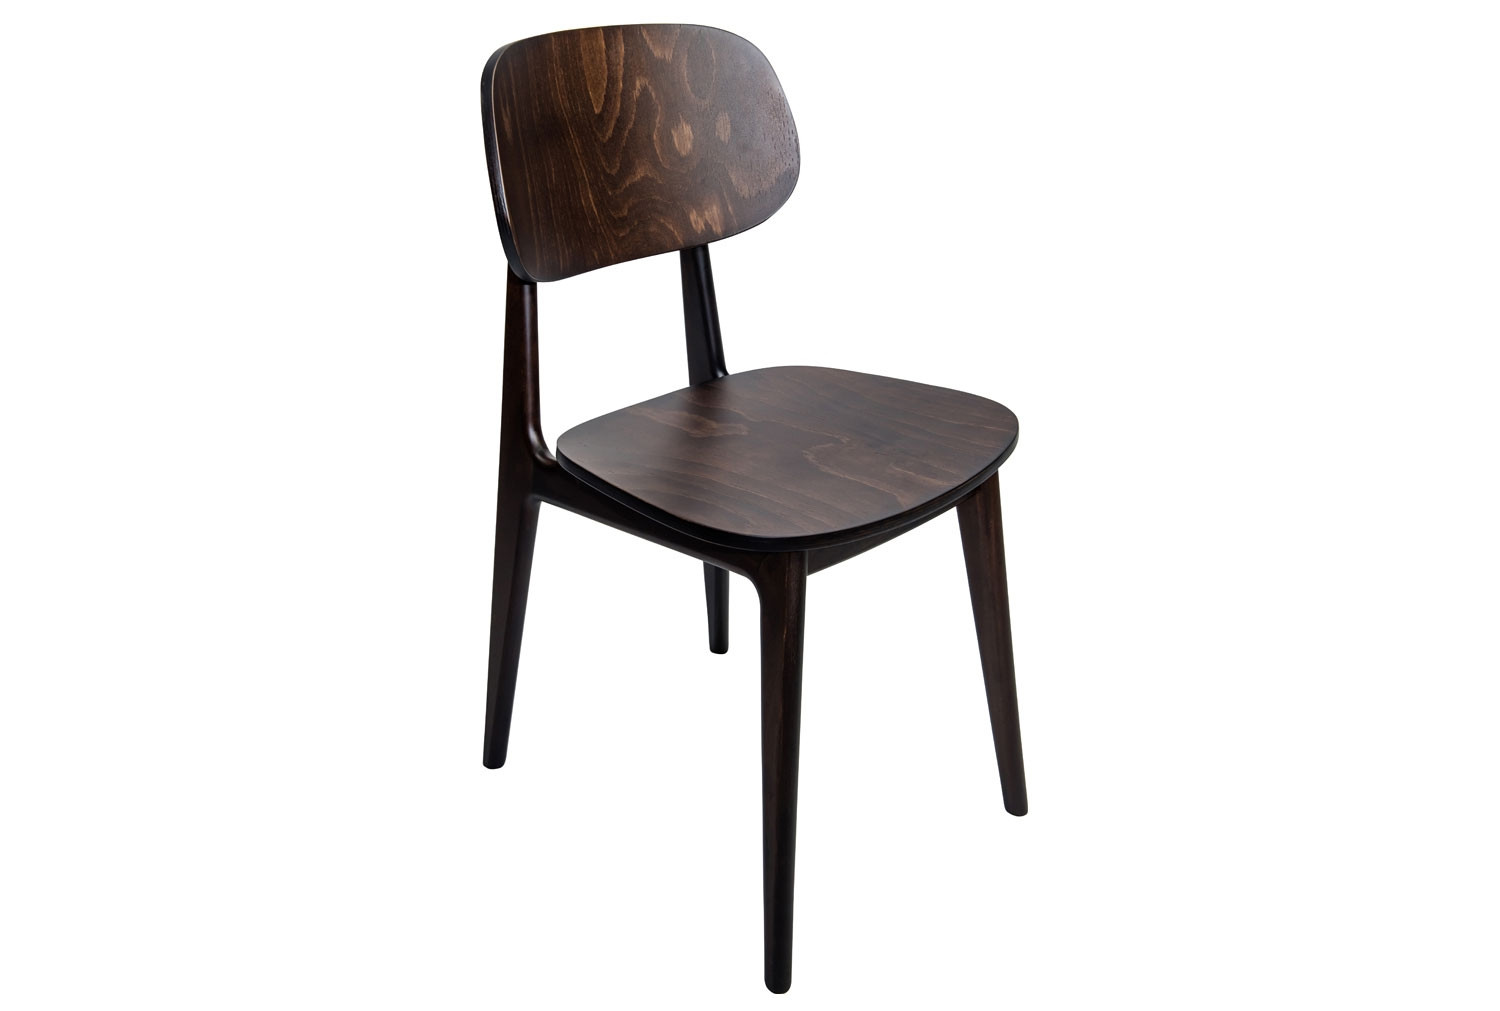 Gardena Dining Chair With Wooden Seat